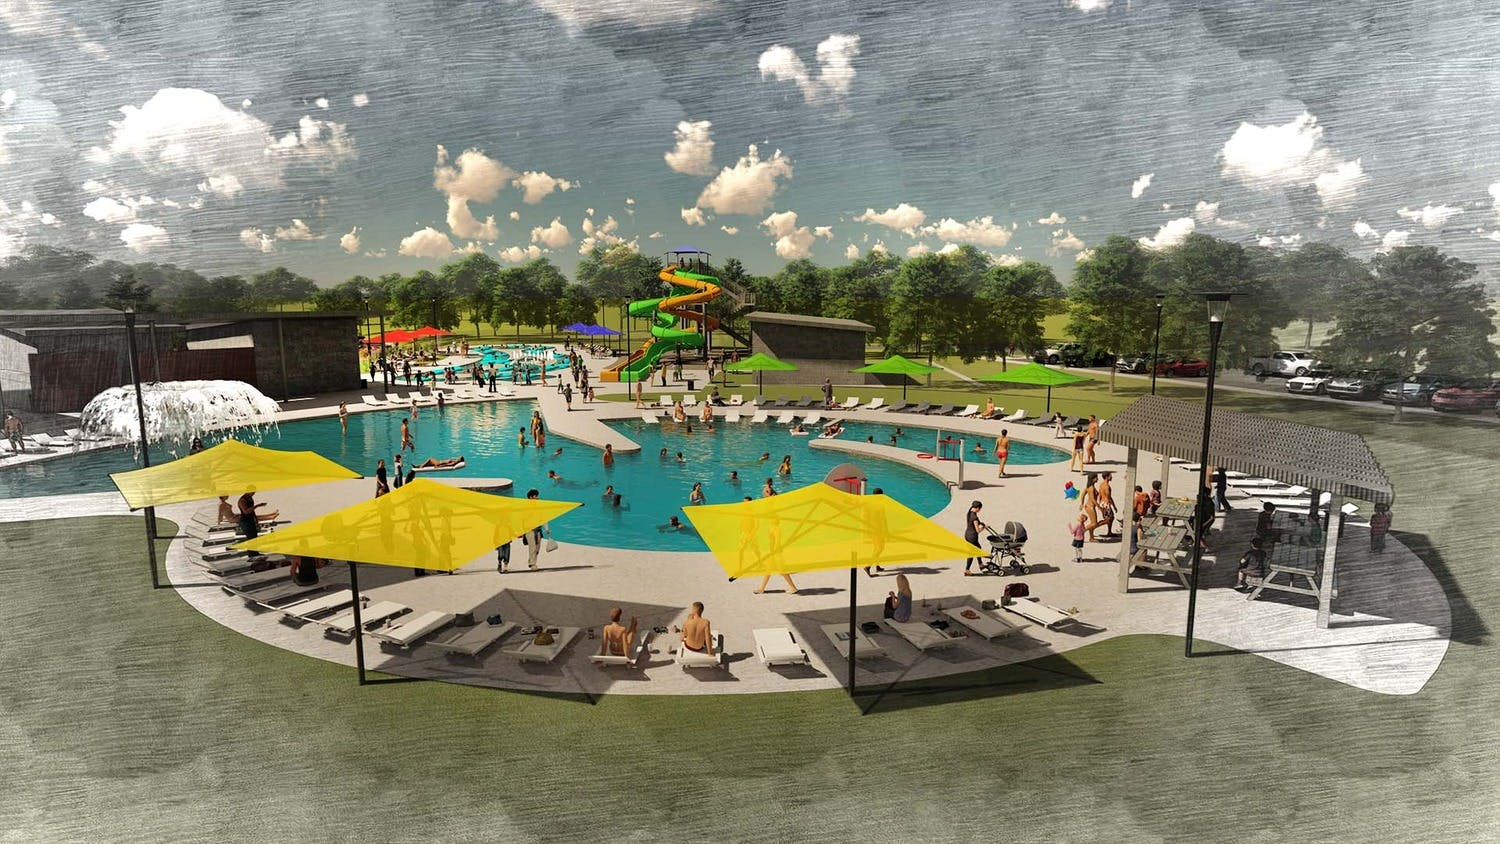 Our view: Local Public Art to be Added to Thompson Park Aquatic Facility, Other Parks